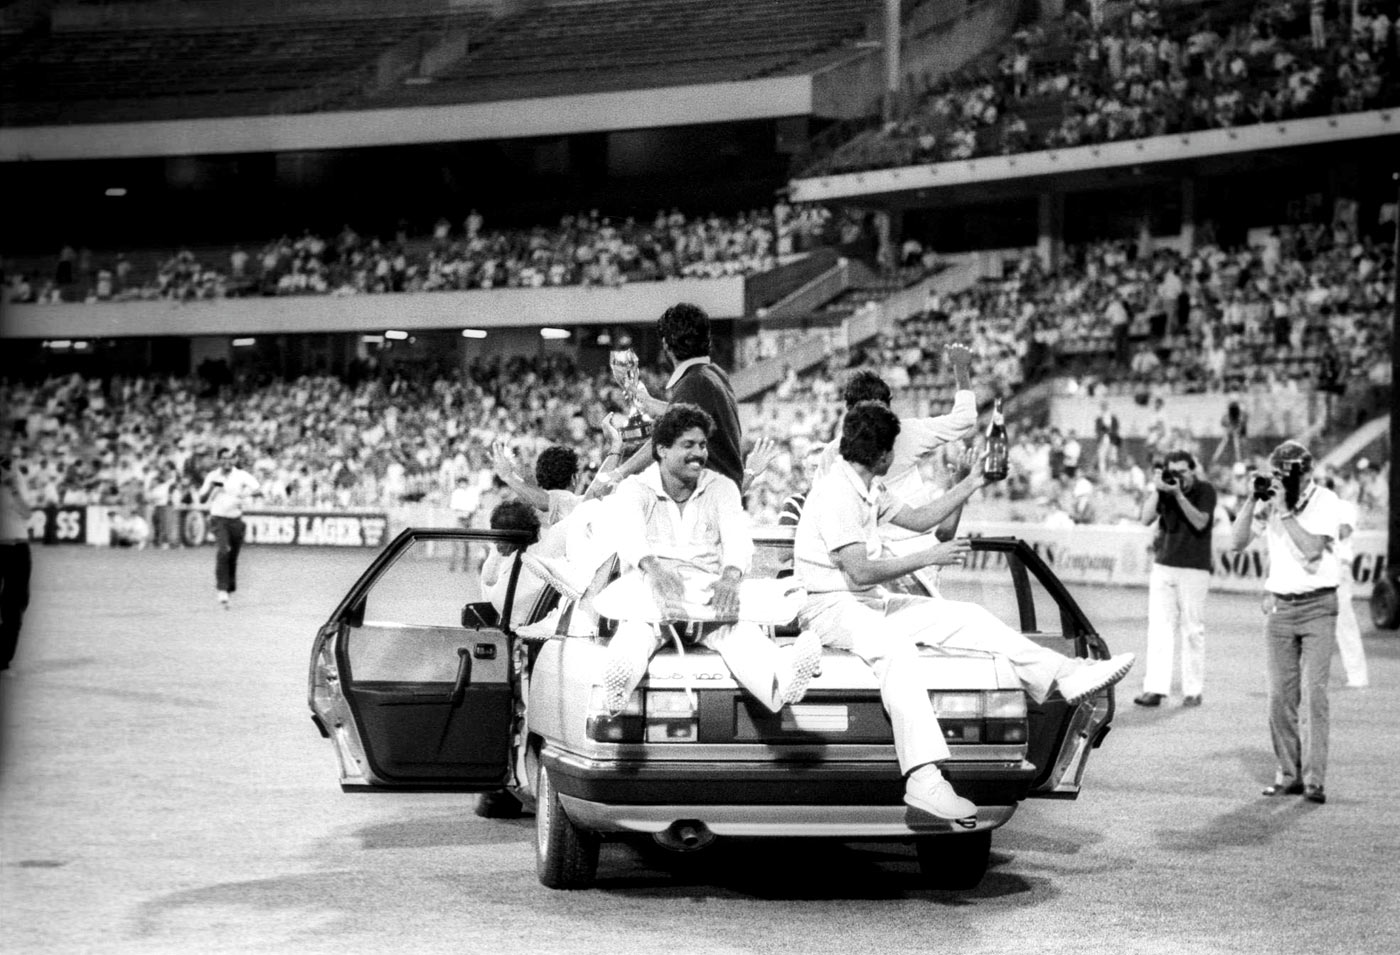 Ravi Shastri improvises a float for India's victory parade at the MCG in 1985